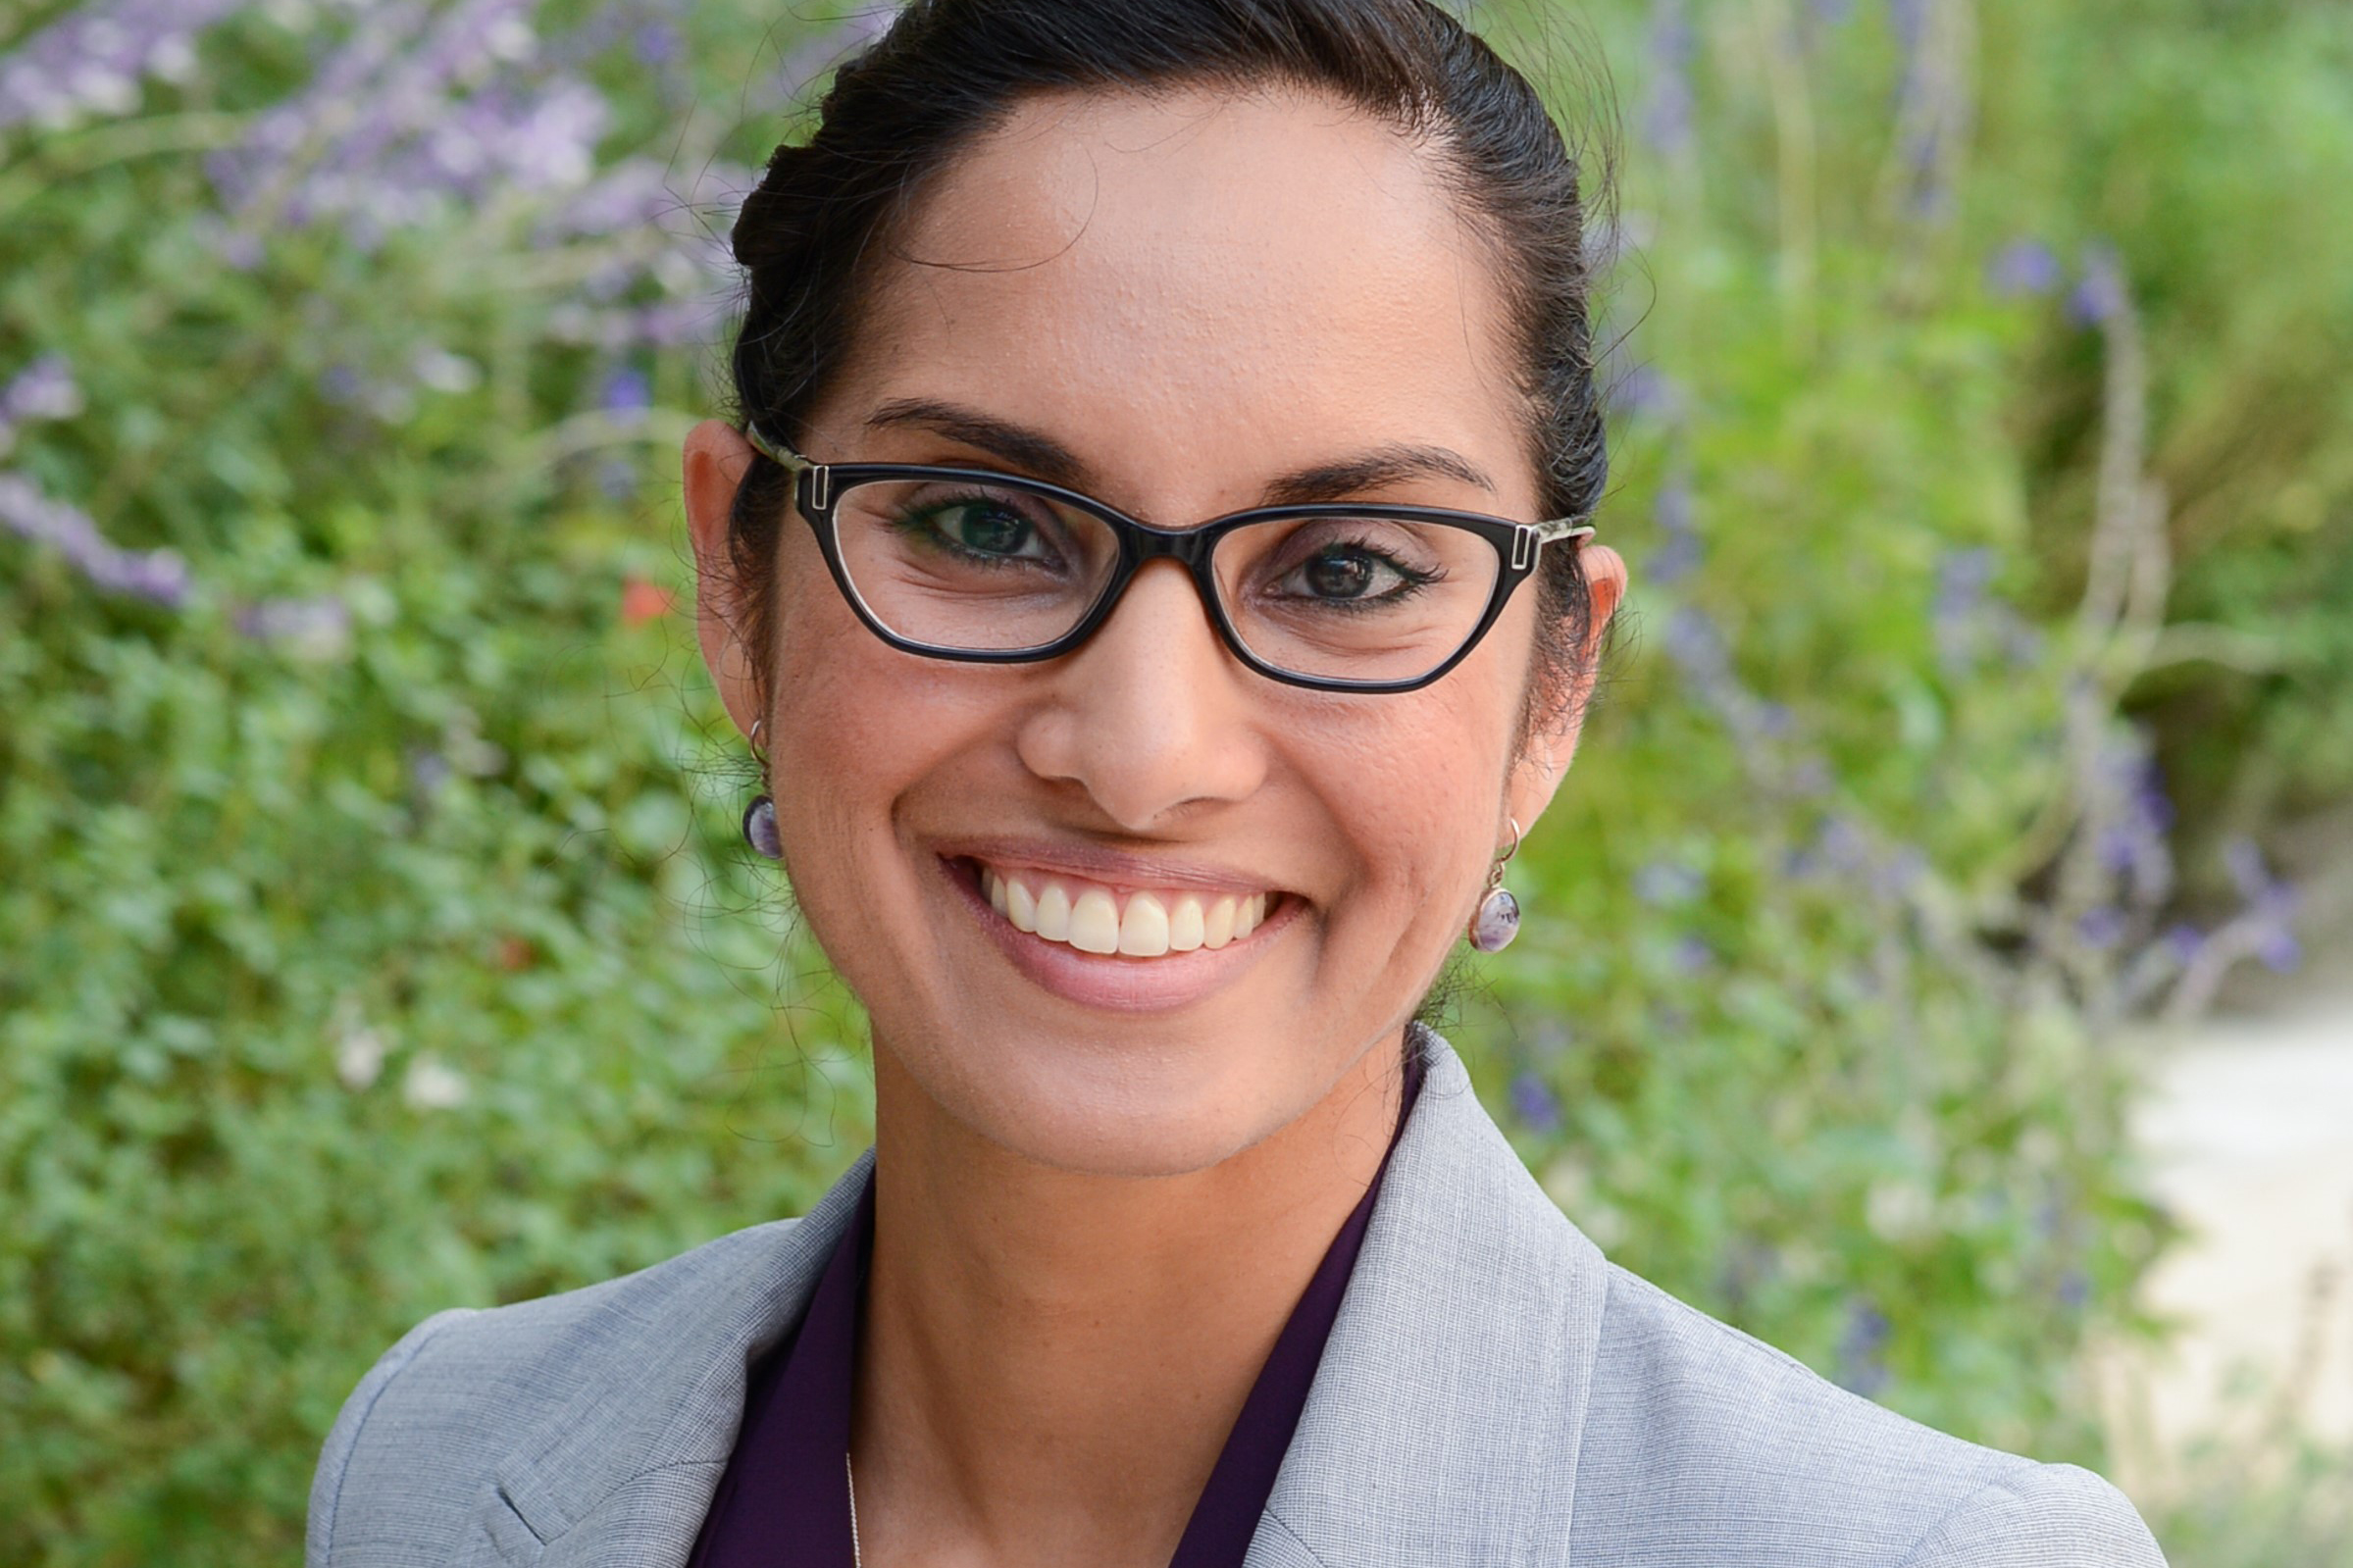 San Diego Mayor Gloria Appoints Farhat Popal As City's Immigrant Affairs Manager